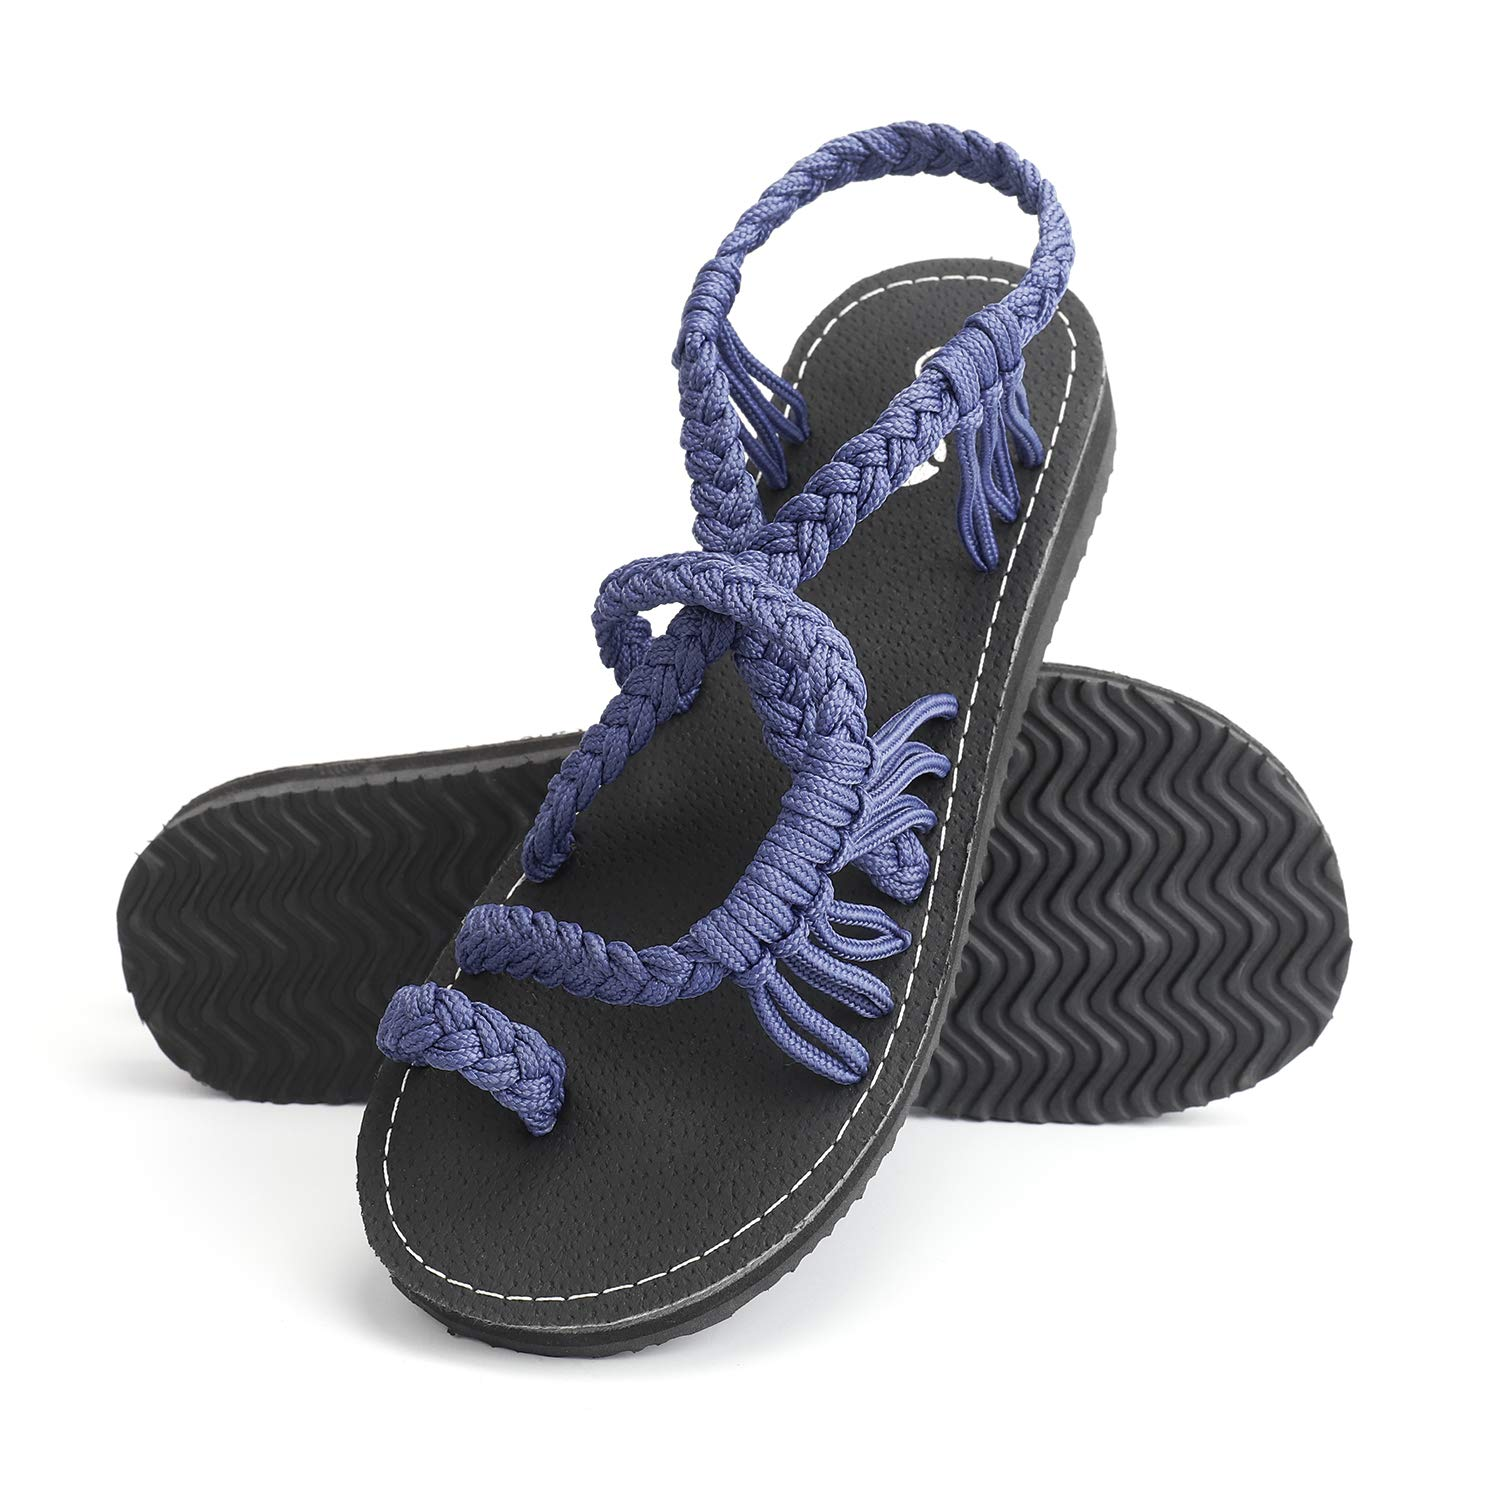 619b17bfe9431 Rekayla Flat Sandals - Braided Rope Walking Sandals for Women